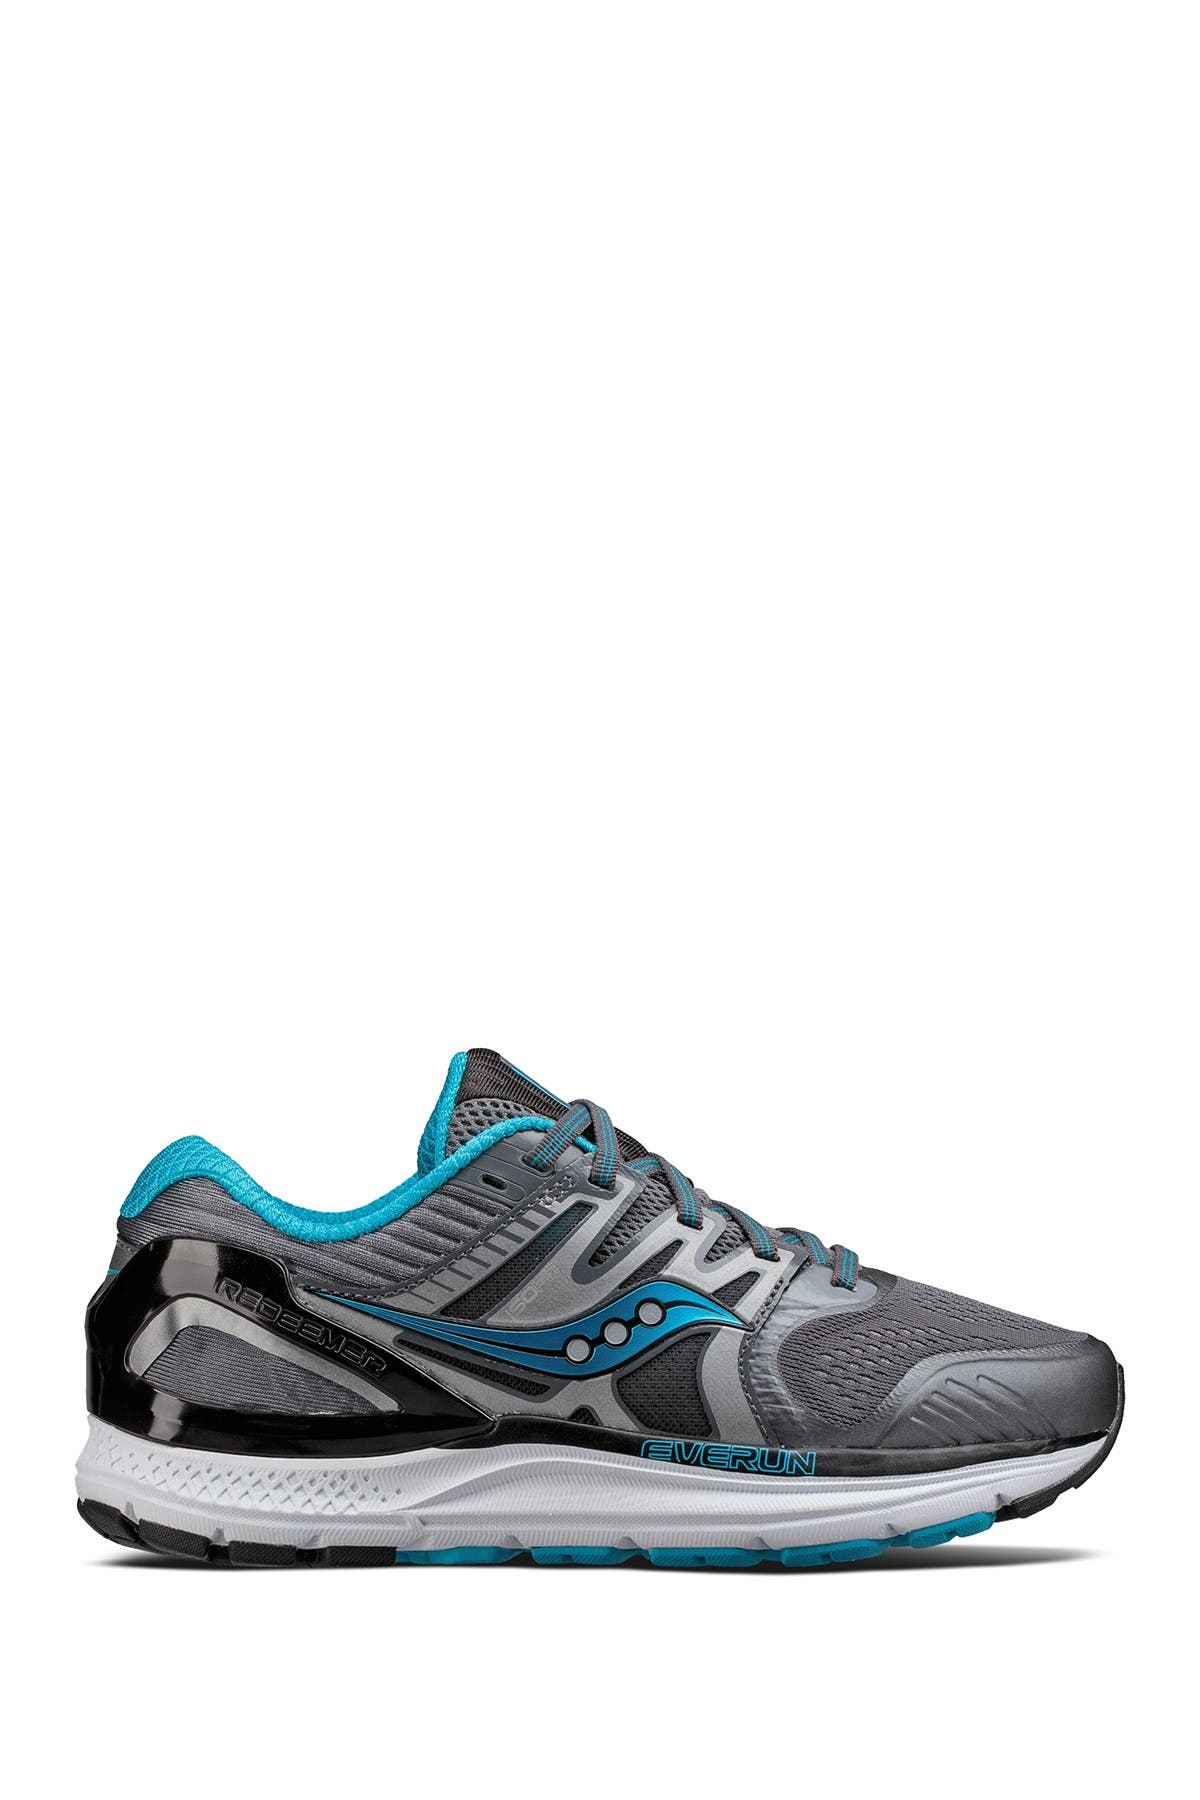 Saucony   Redeemer ISO Motion Control